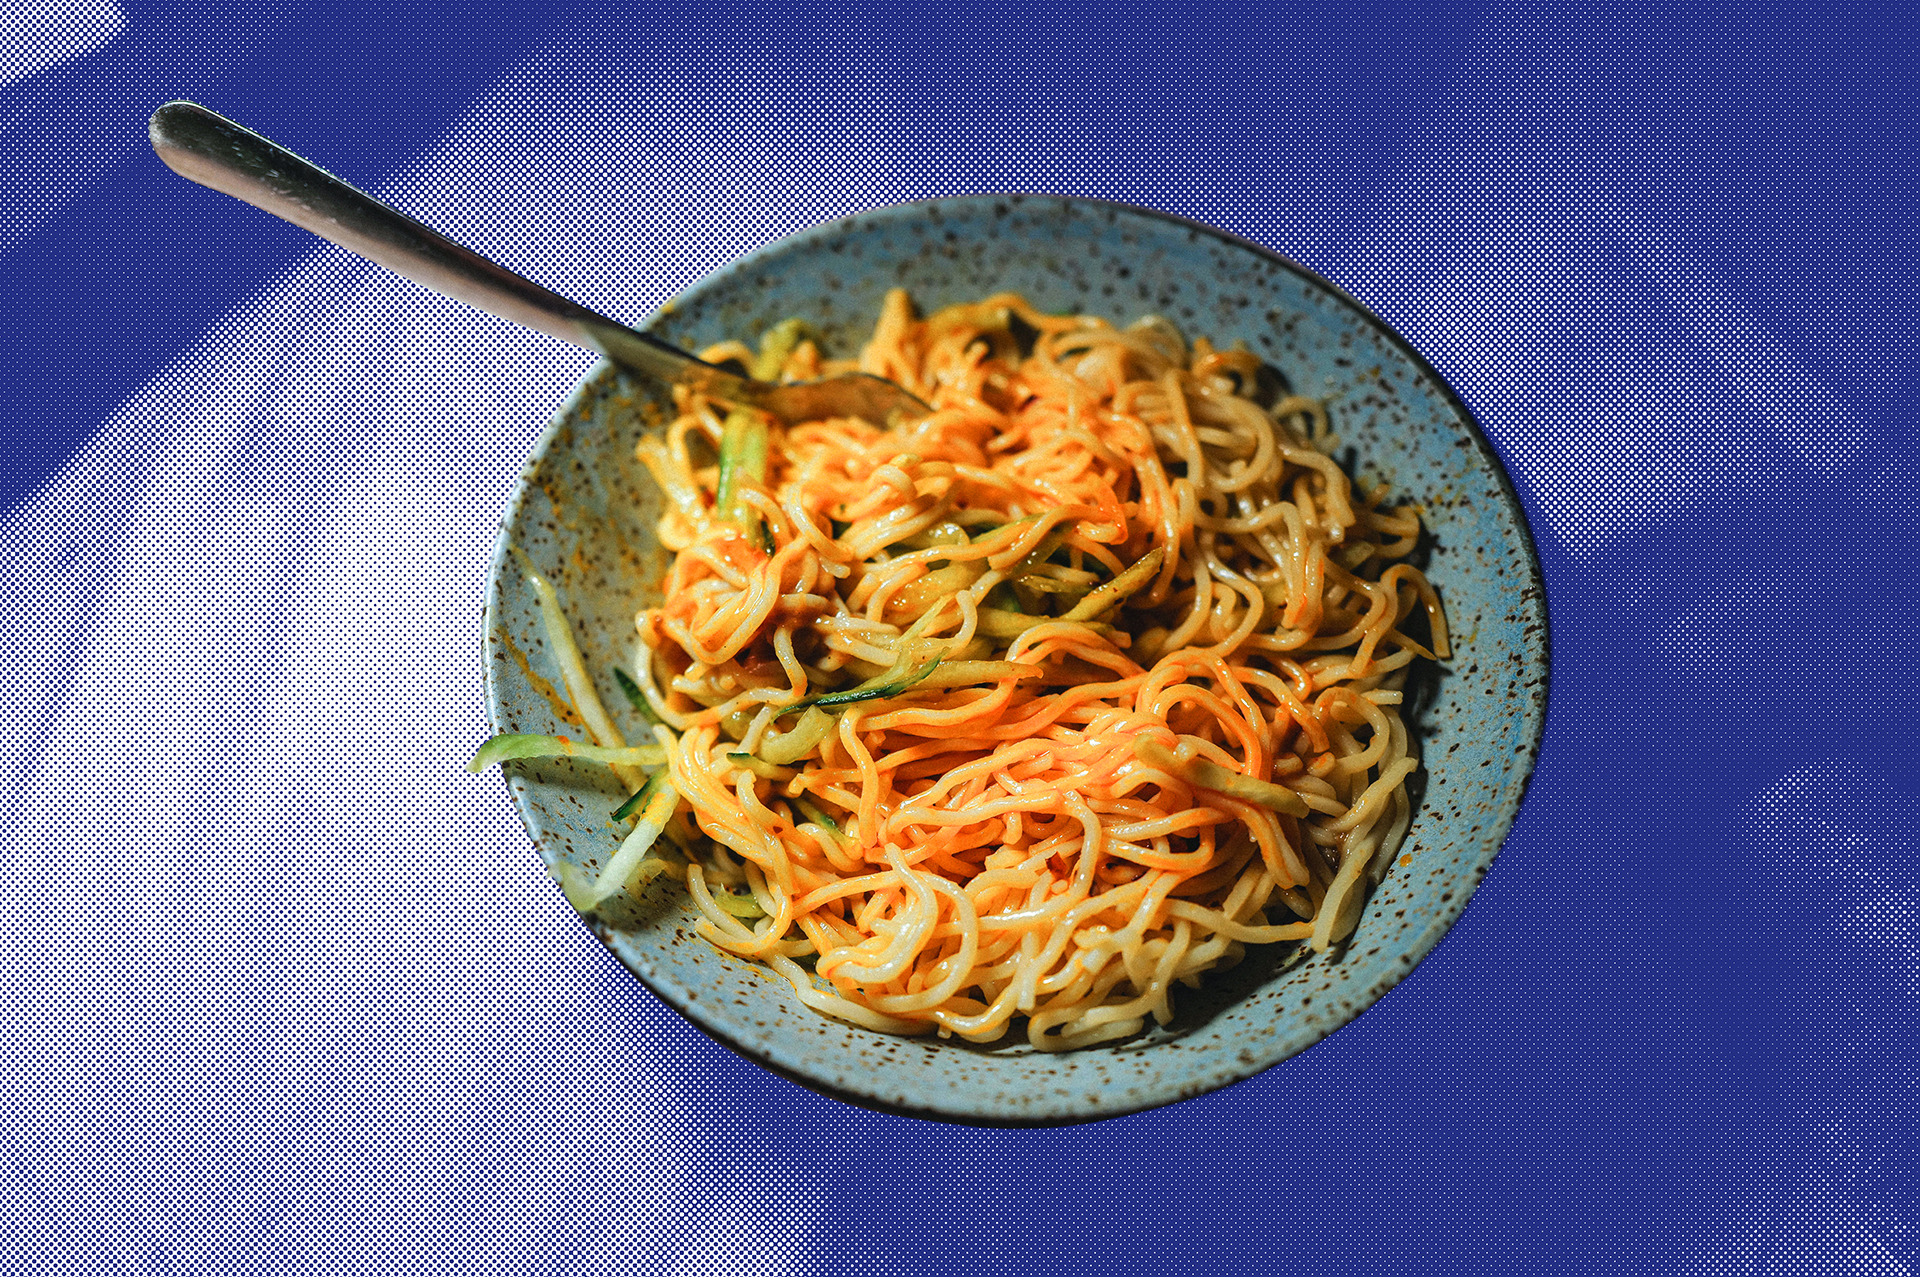 A bowl of Pintung cold noodles with peanut sauce, garnished with slivers of cucumber, against a blue backdrop.